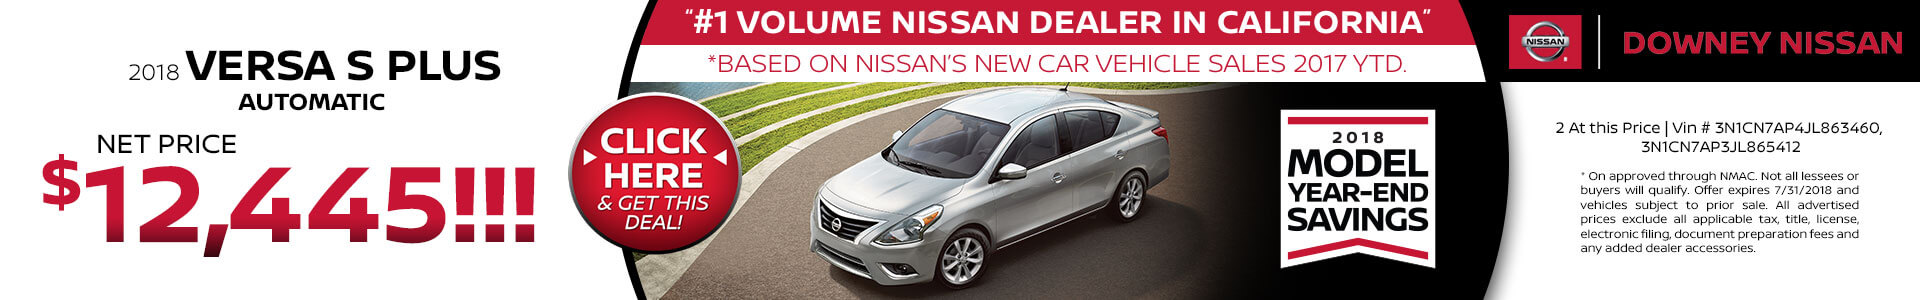 2018 Versa - Purchase for $12,445